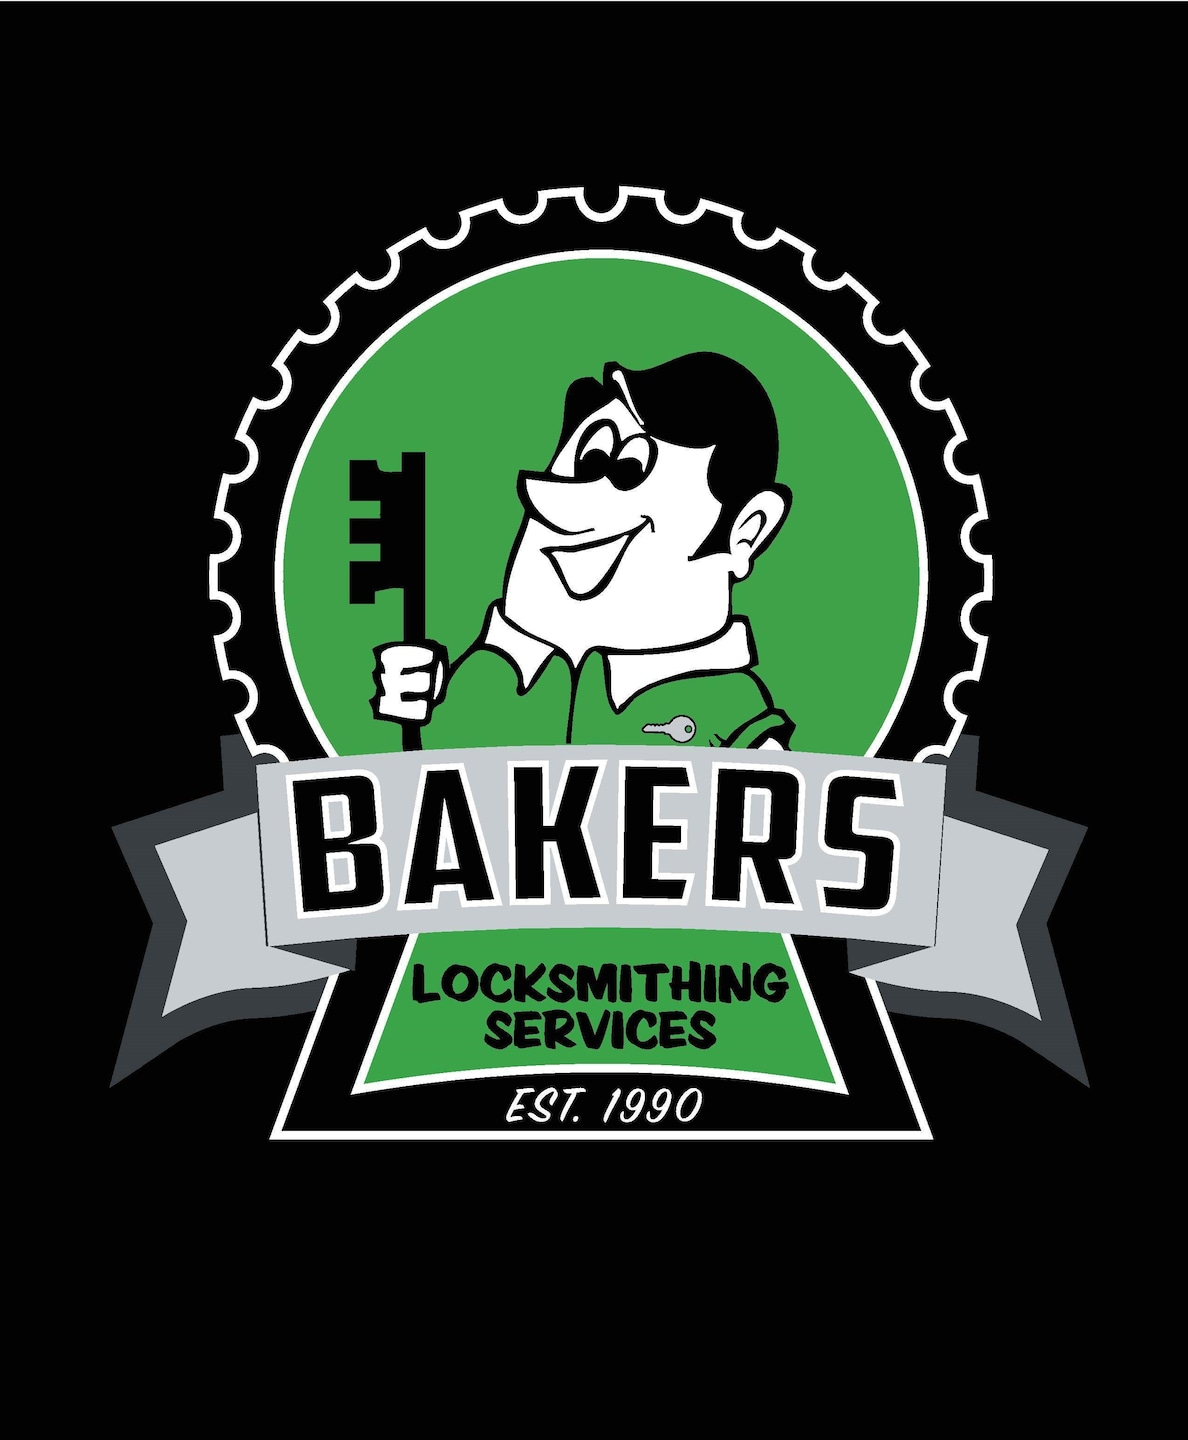 Bakers Locksmithing Services